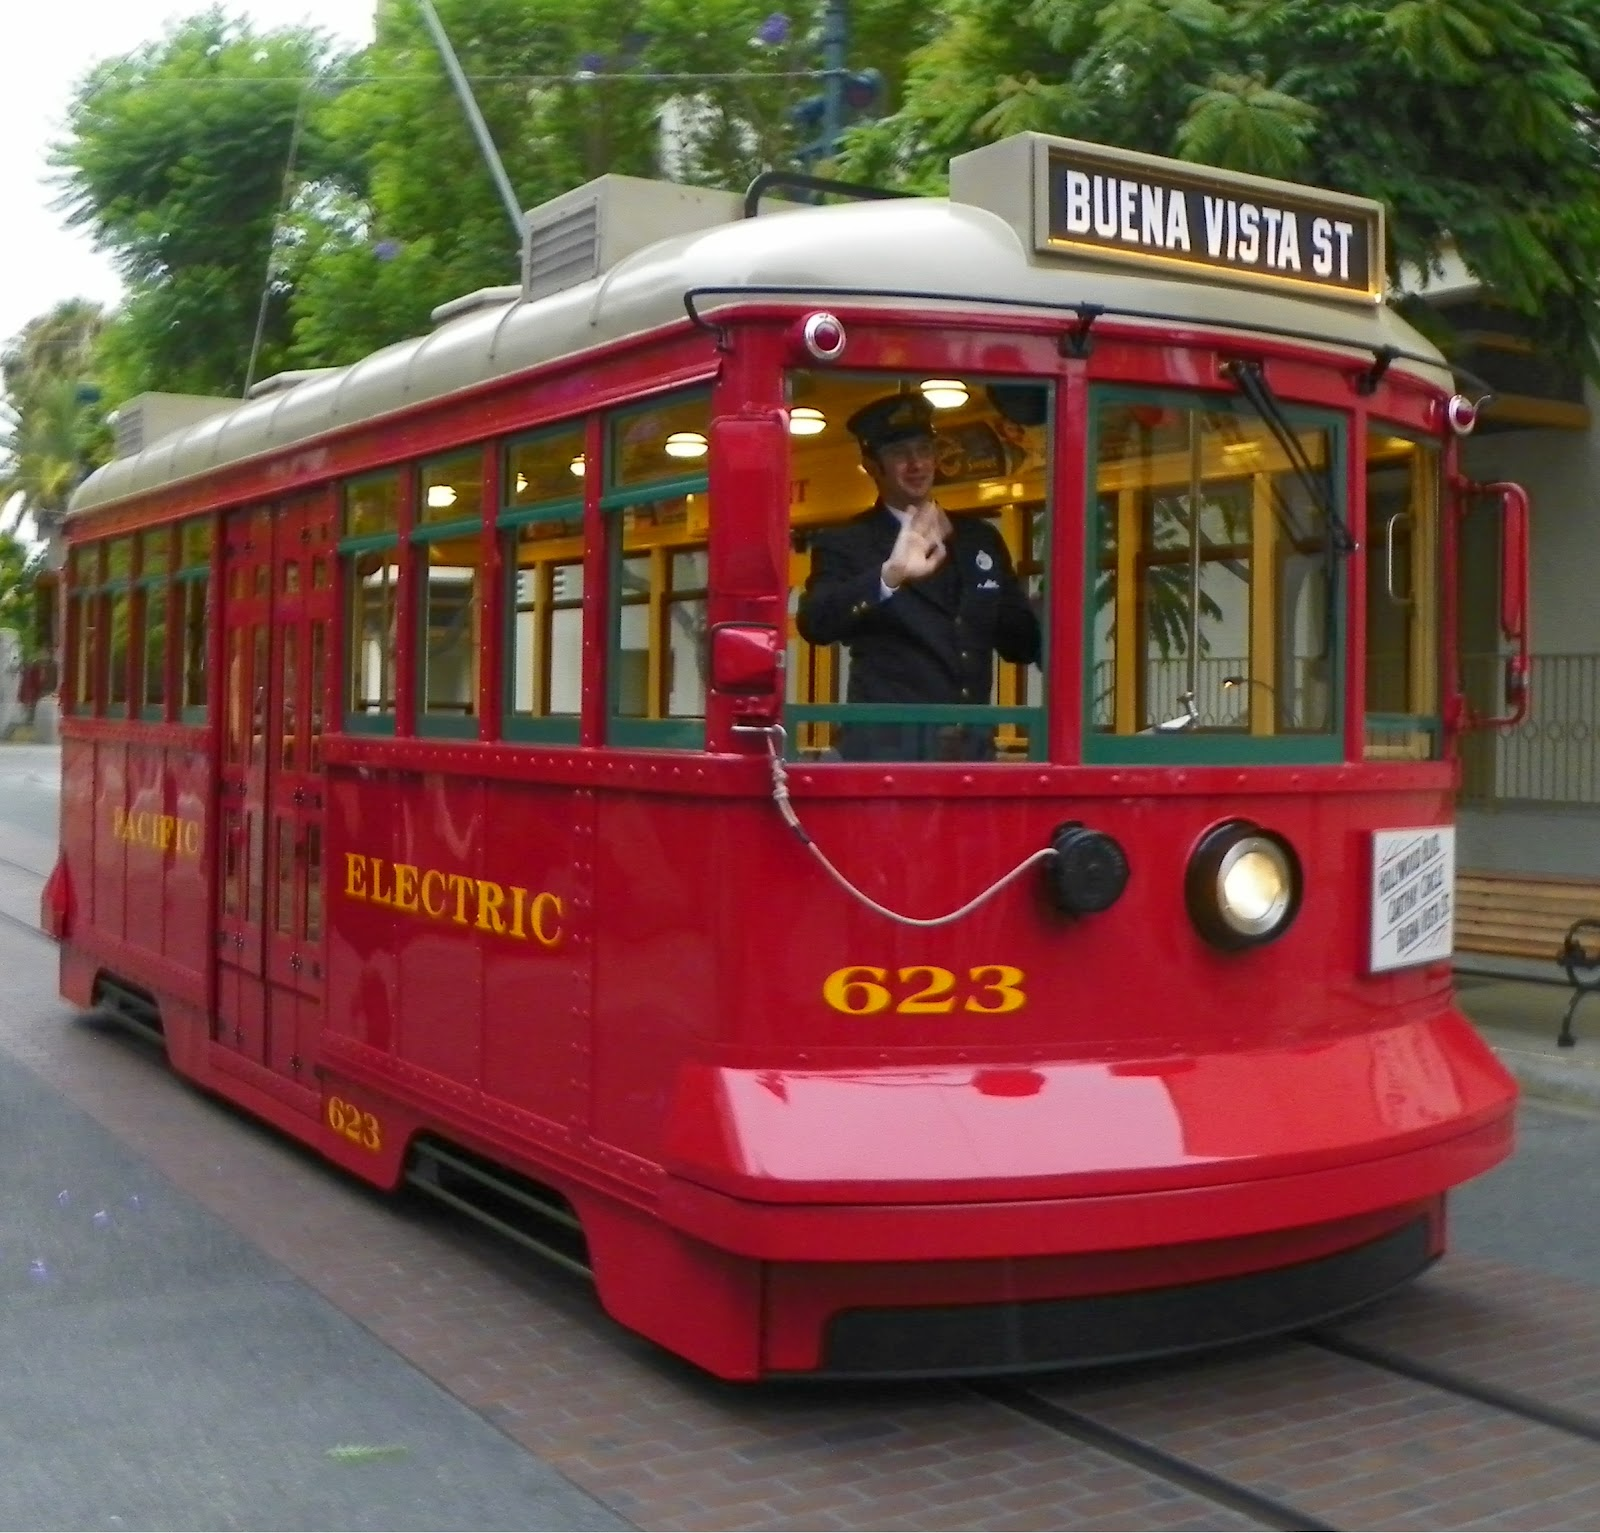 Pixie Pranks And Disney Fun: The Red Car Trolley